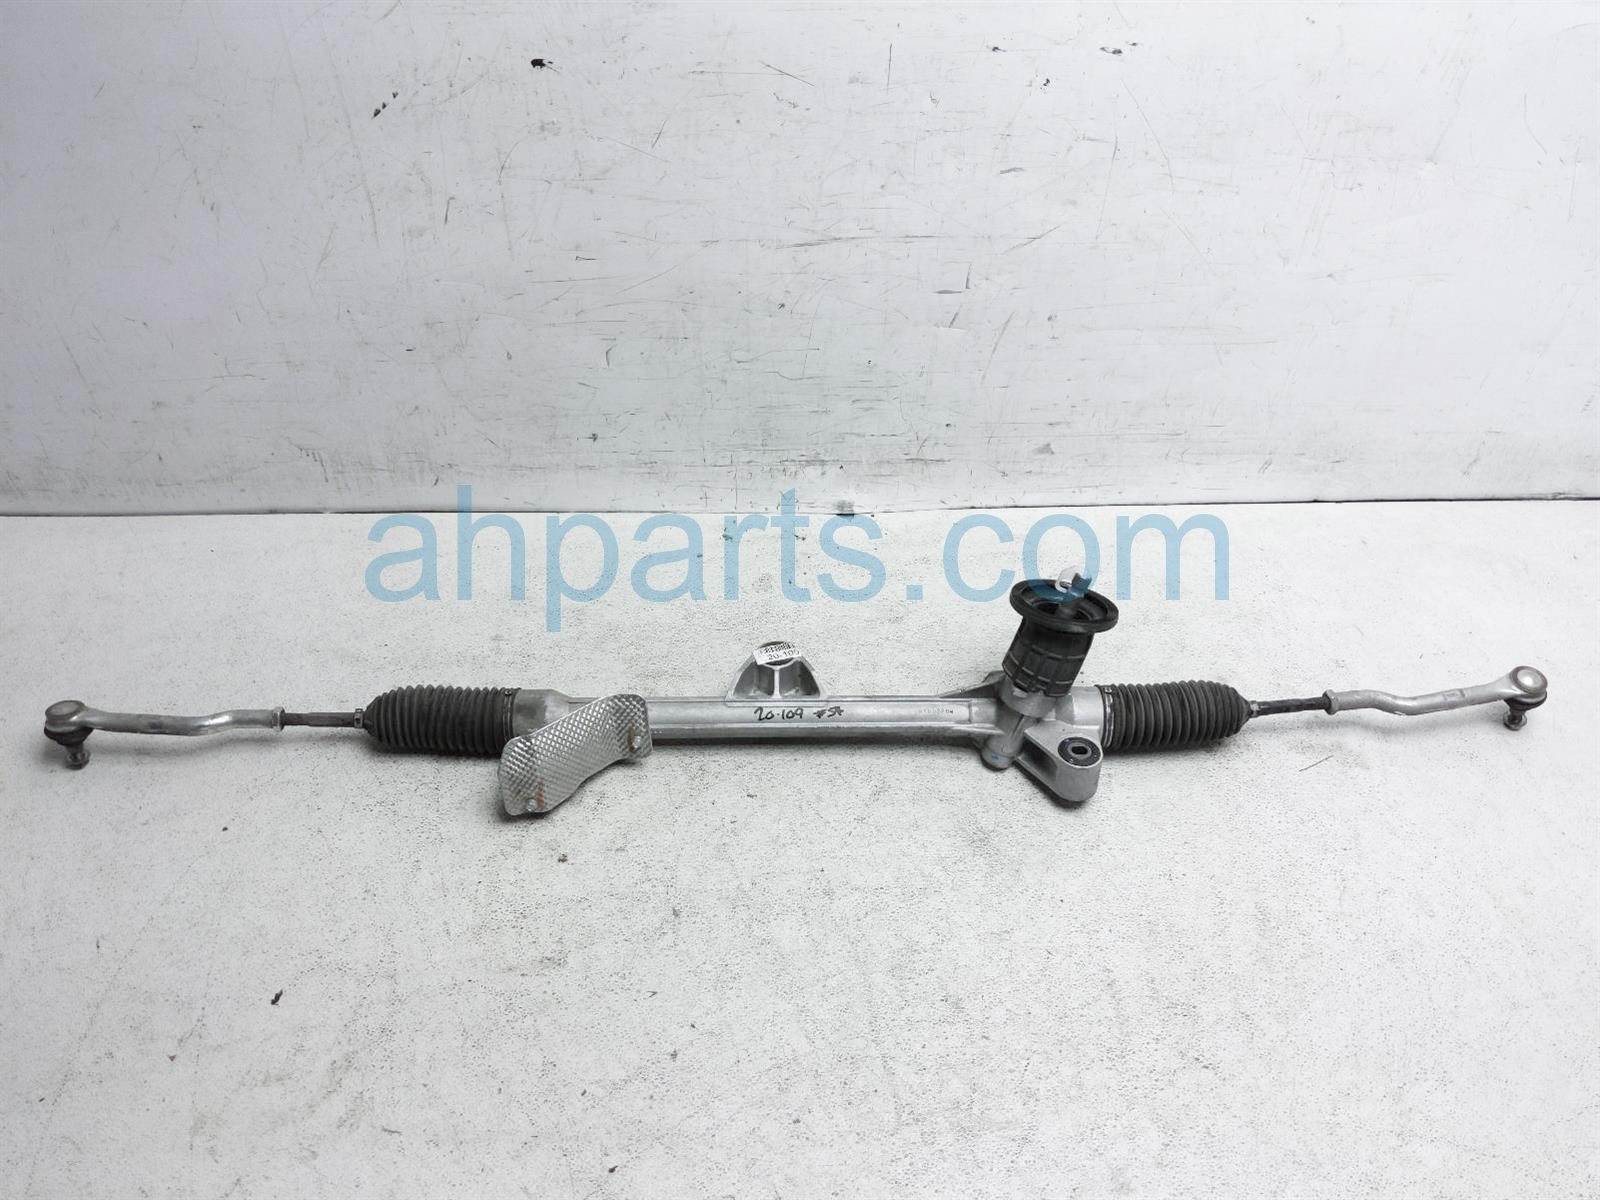 2019 Honda Pilot And / Gear Box Power Steering Rack & Pinion 53601 TG7 A02 Replacement